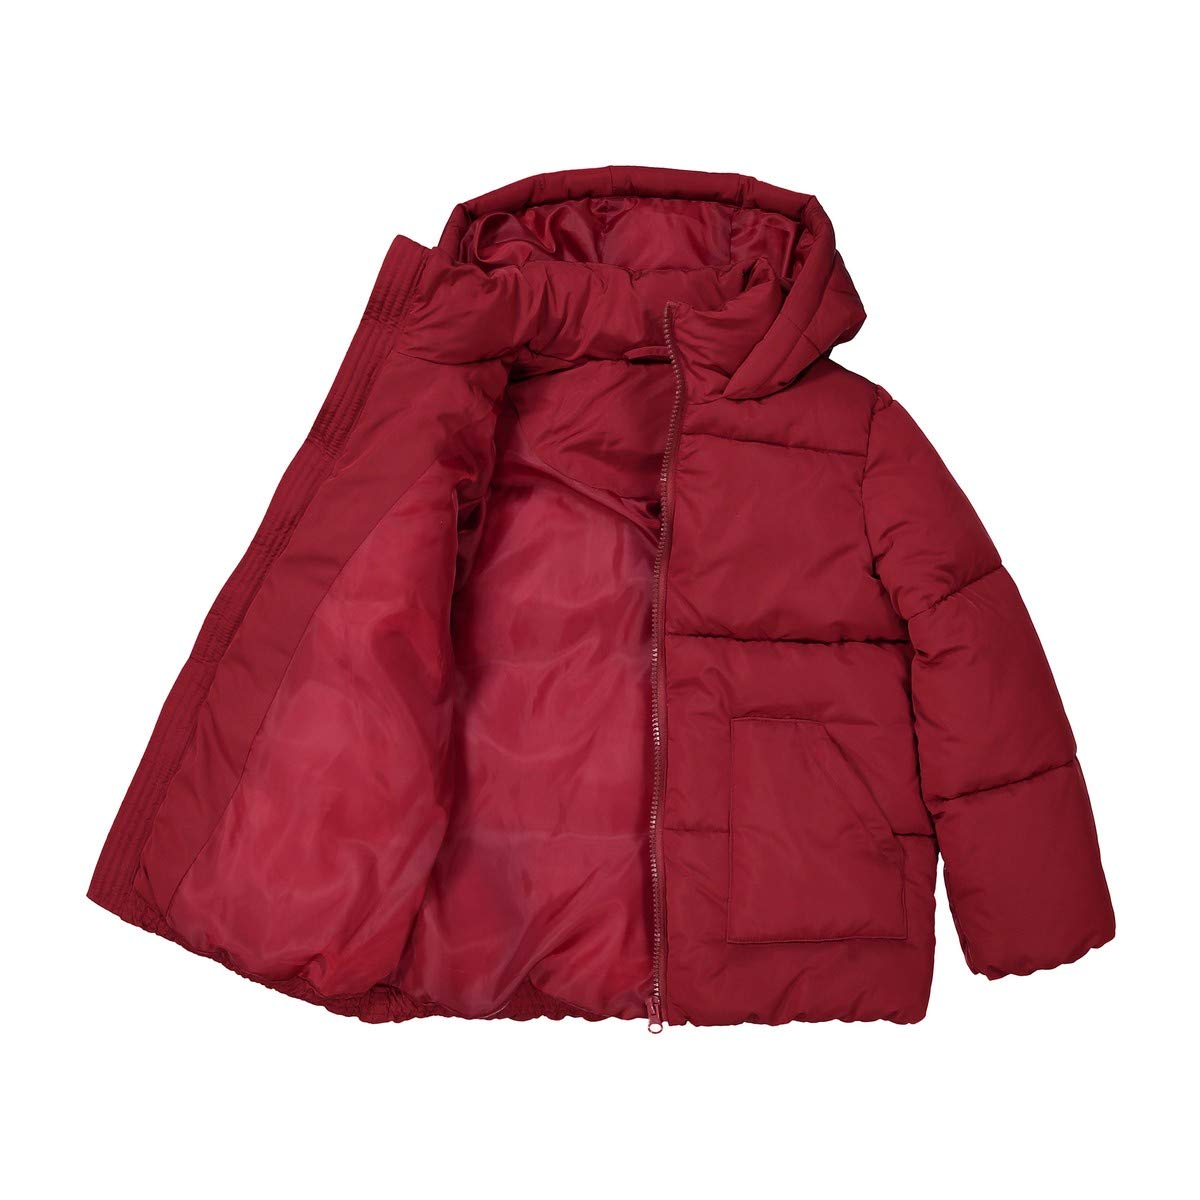 3-12 Years La Redoute Collections Big Girls Long Warm Hooded Padded Jacket